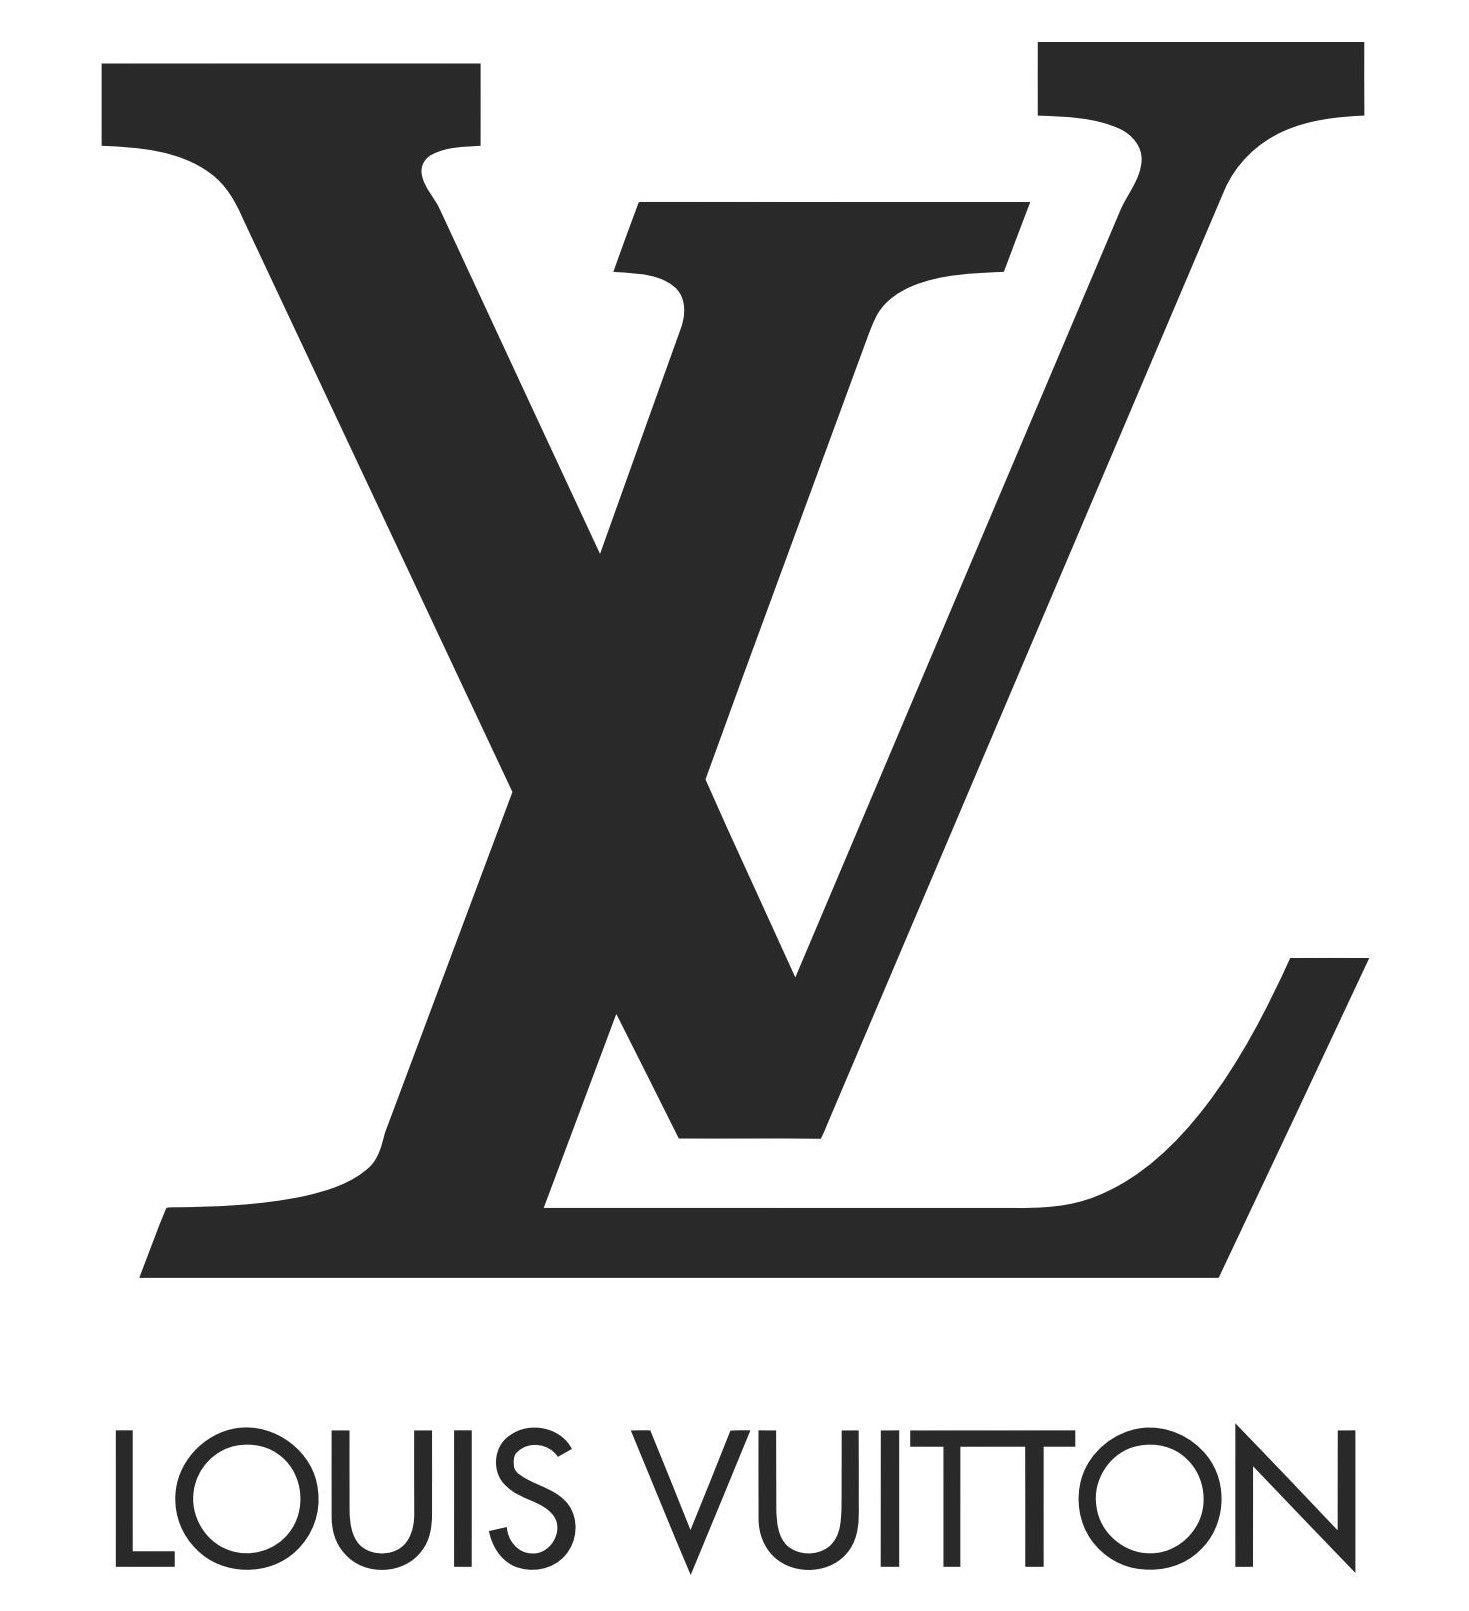 Louis Vuitton Logo [EPS File] | Clothing Company Logos ...